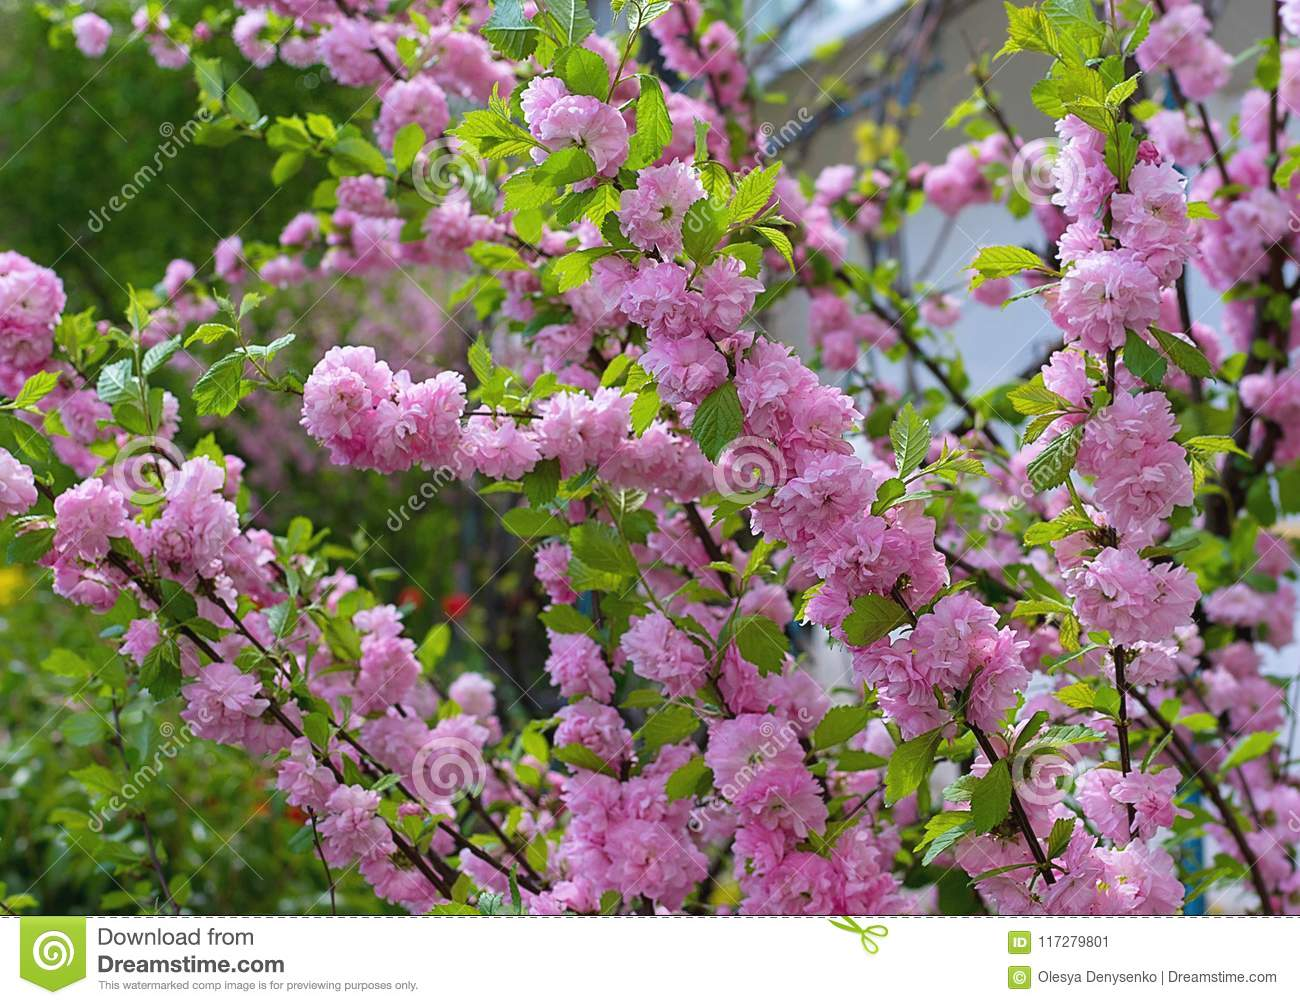 Pink flower bushes at the garden spring time stock image image of pink flower bushes at the garden spring time mightylinksfo